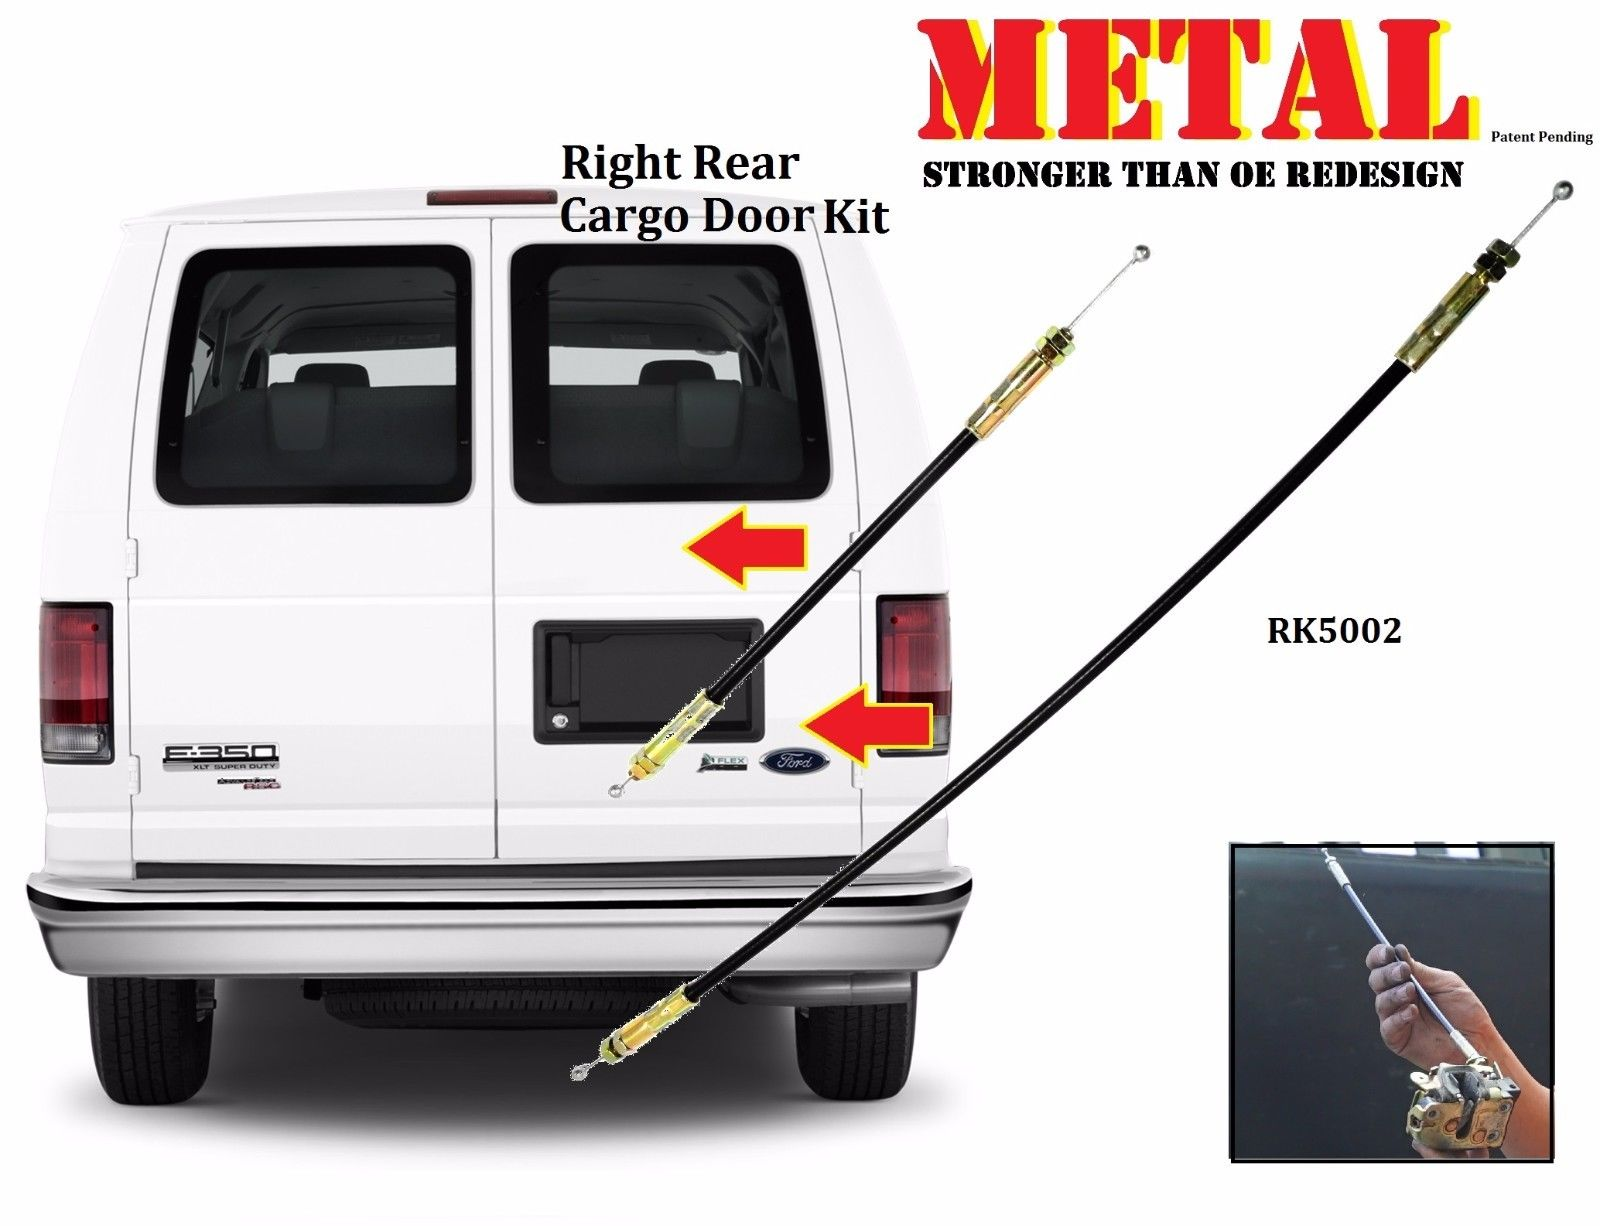 hight resolution of need 1990 e150 door latch mechanism diagram e150 ford cars wiring ford e 250 rear door diagram